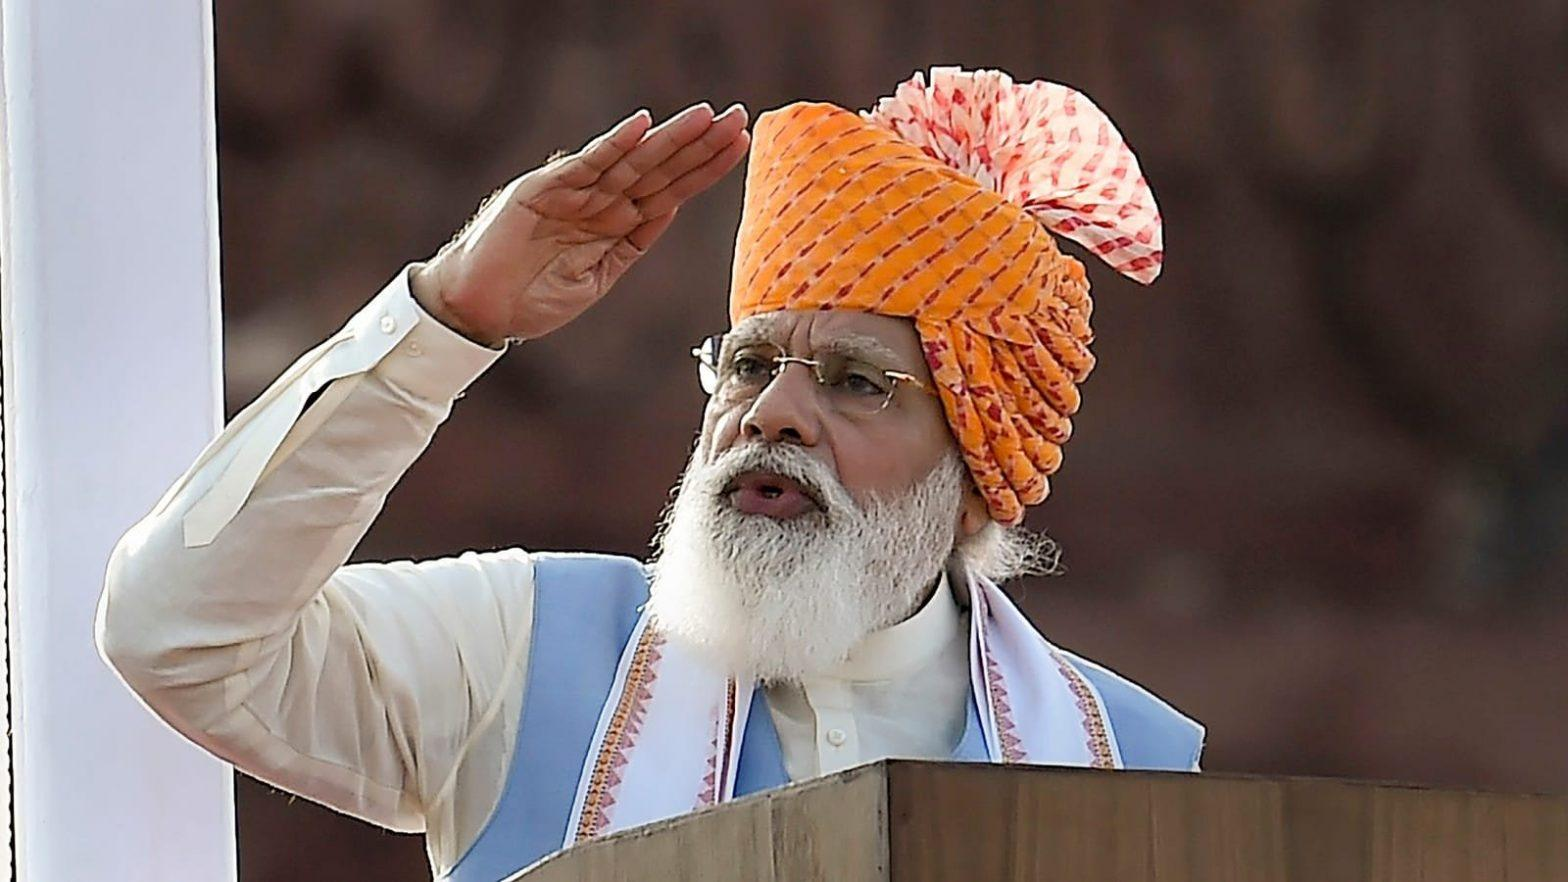 PM Modi sets India's target to become 'energy independent' by 2047_40.1